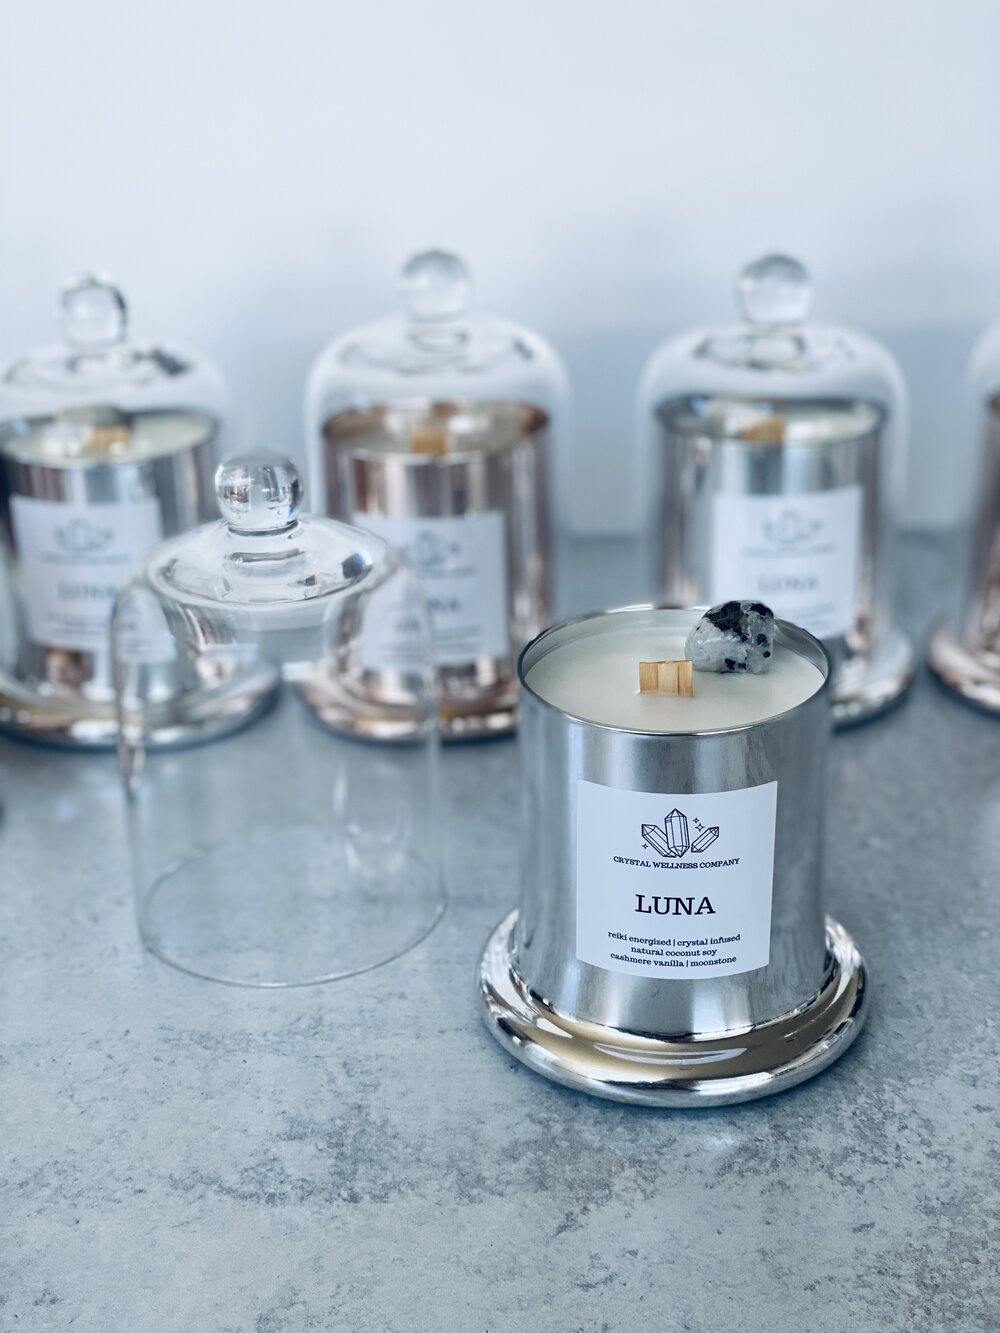 Candles from Crystal Wellness Company